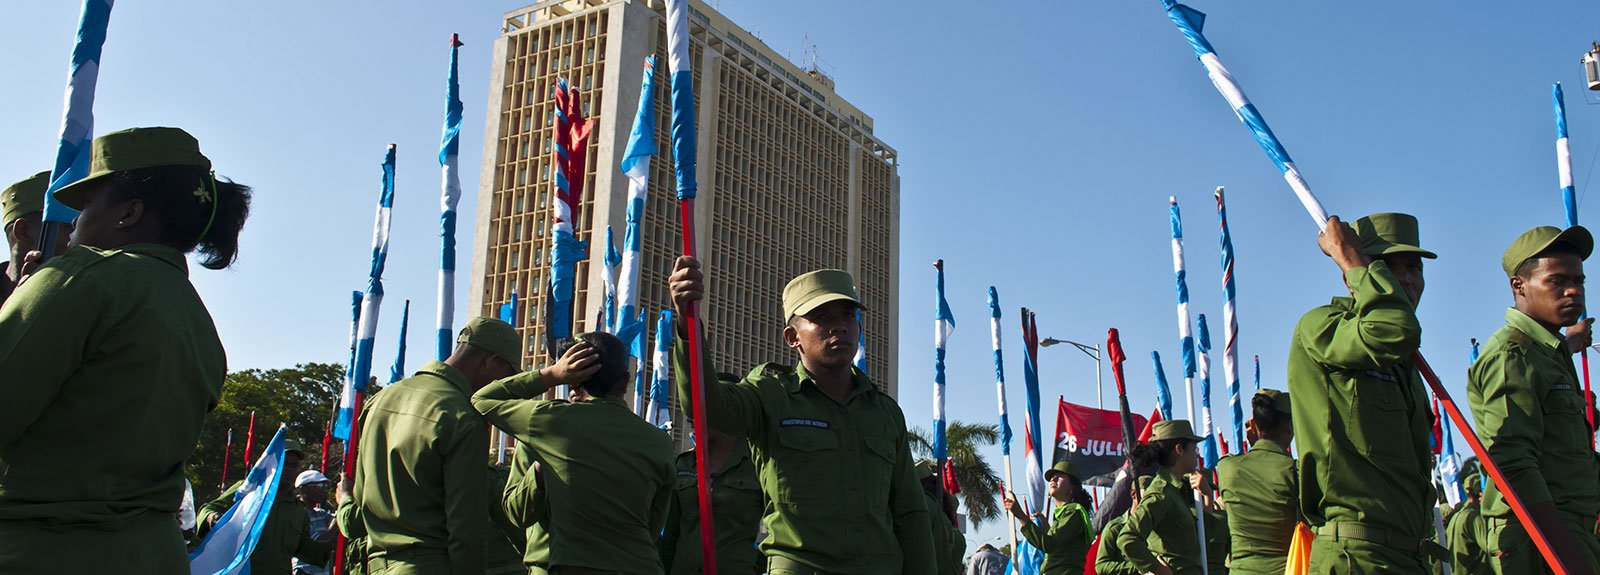 Young Military boys in green uniform carrying cuban flags